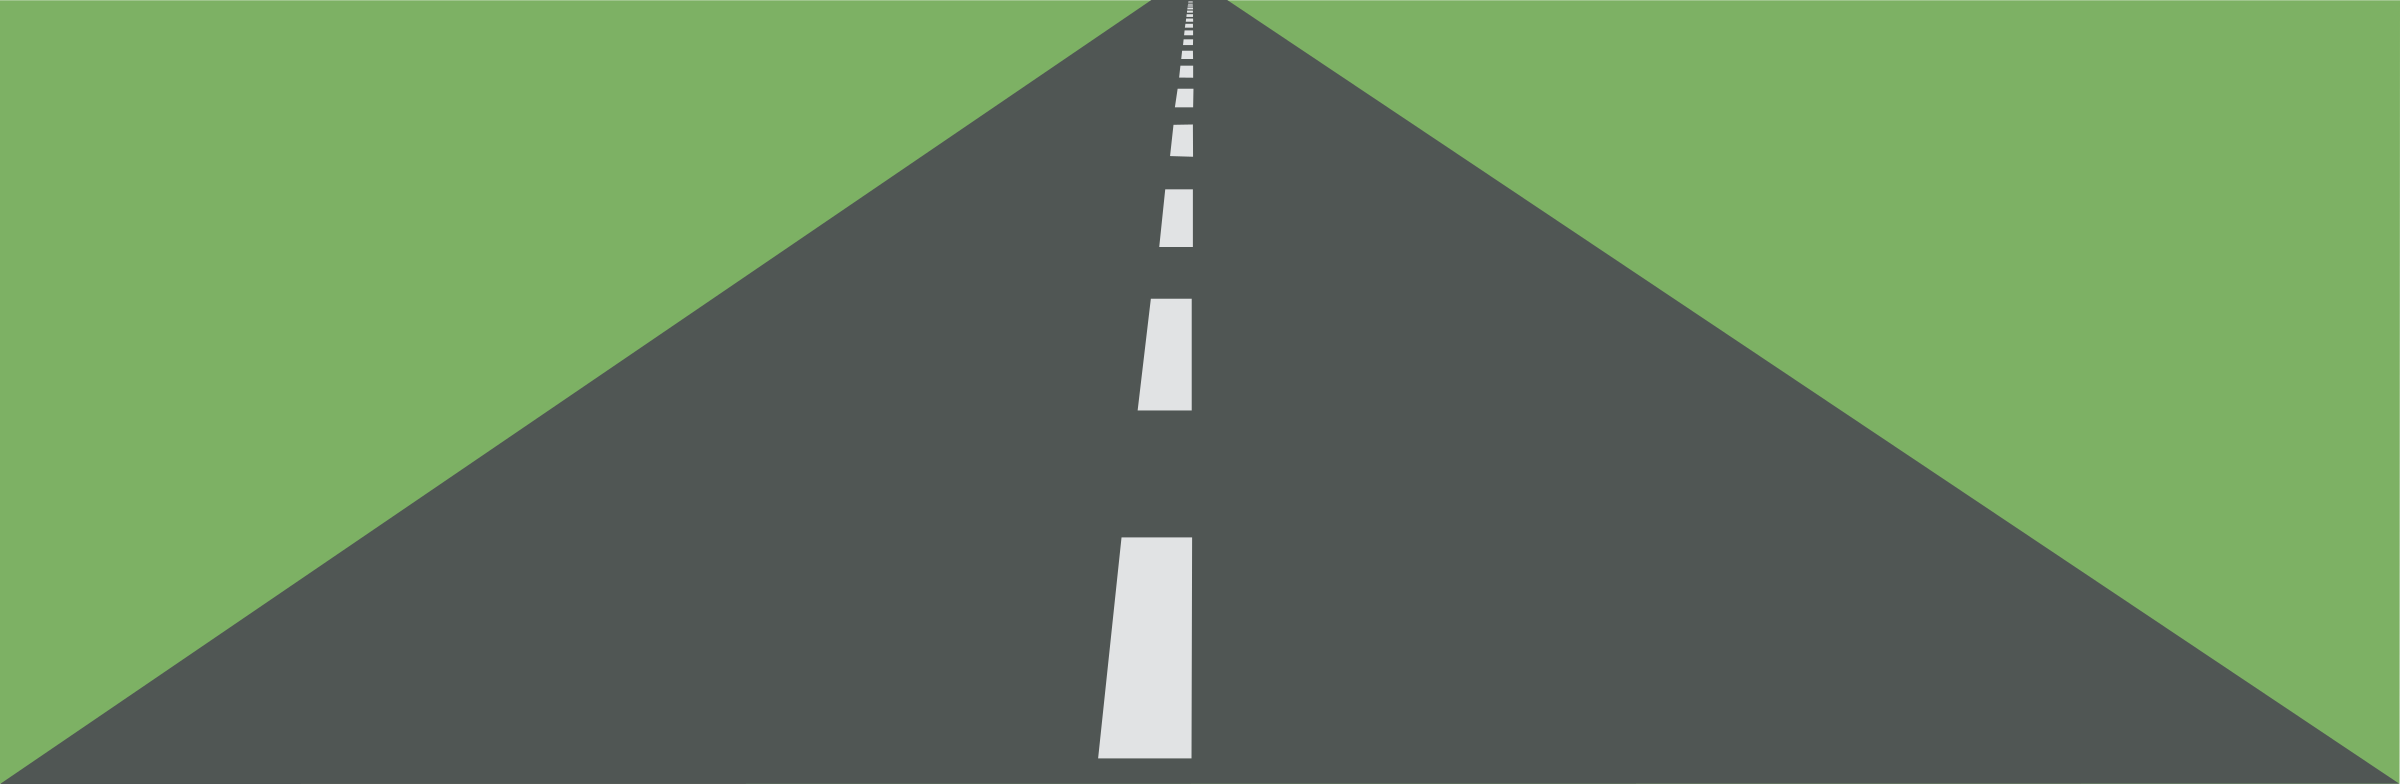 Clipart Road With Landscape-Clipart road with landscape-3